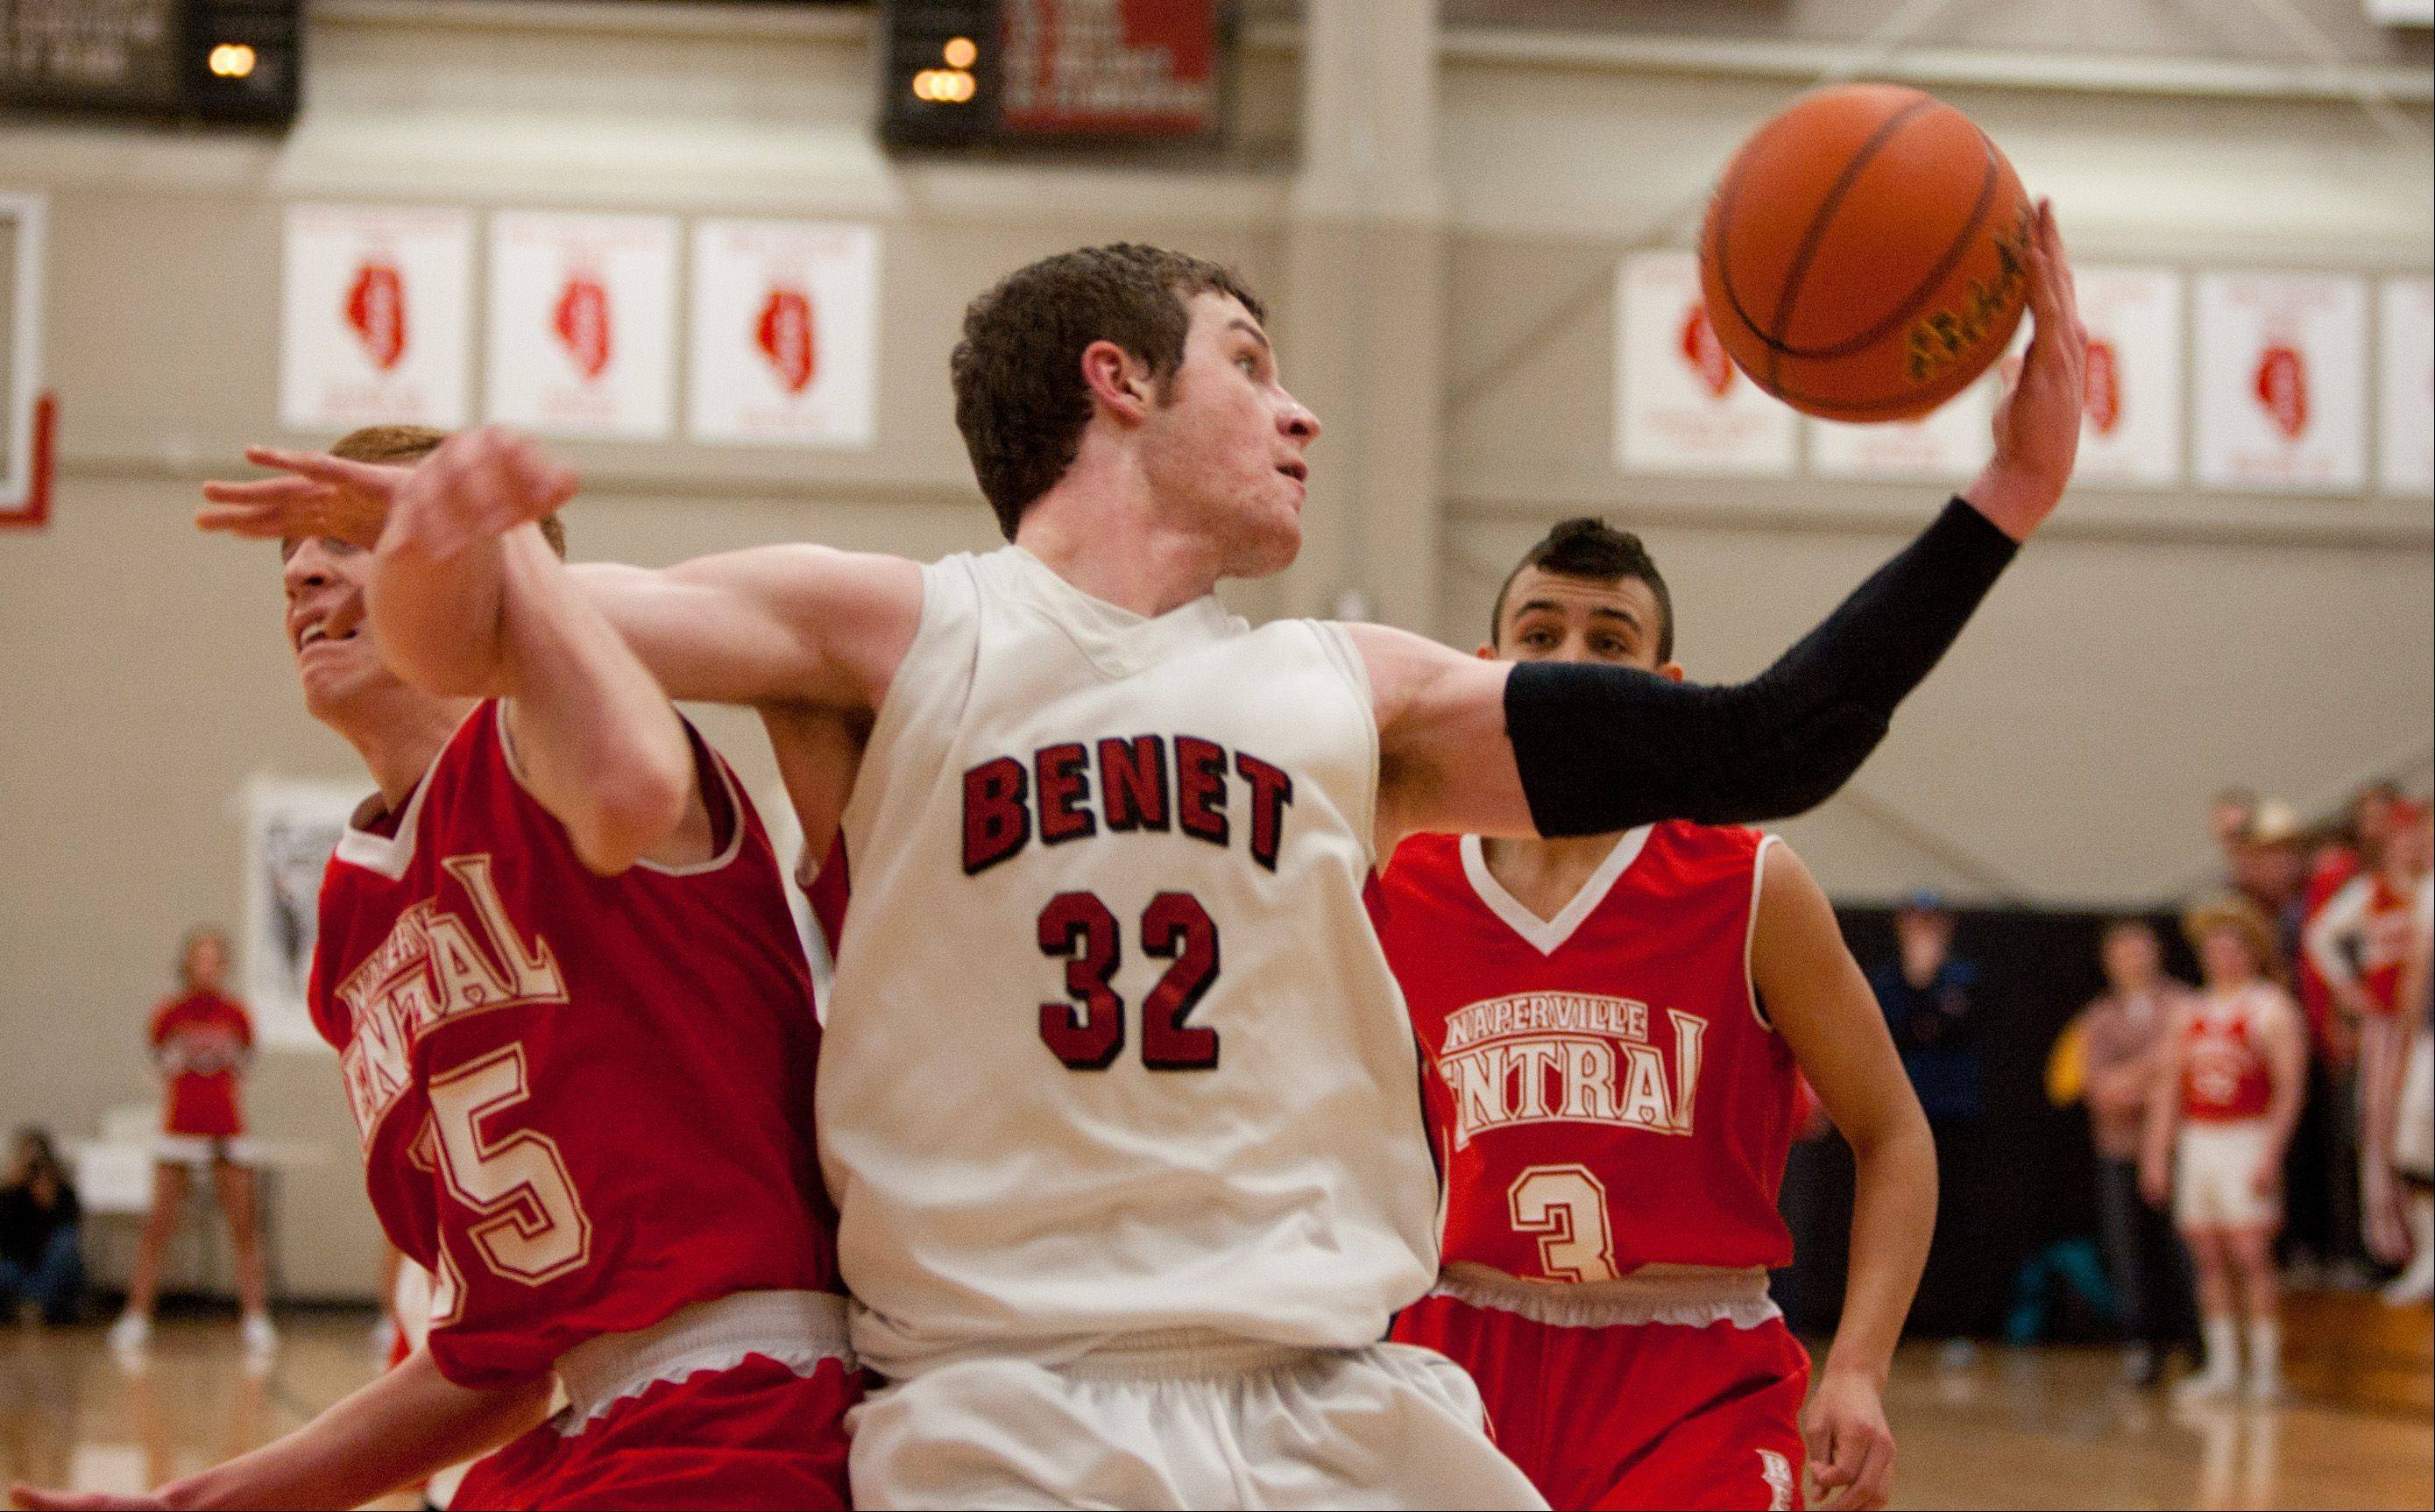 Benet's Pat McInerney (32), grabs a rebound during regional action in Lisle.